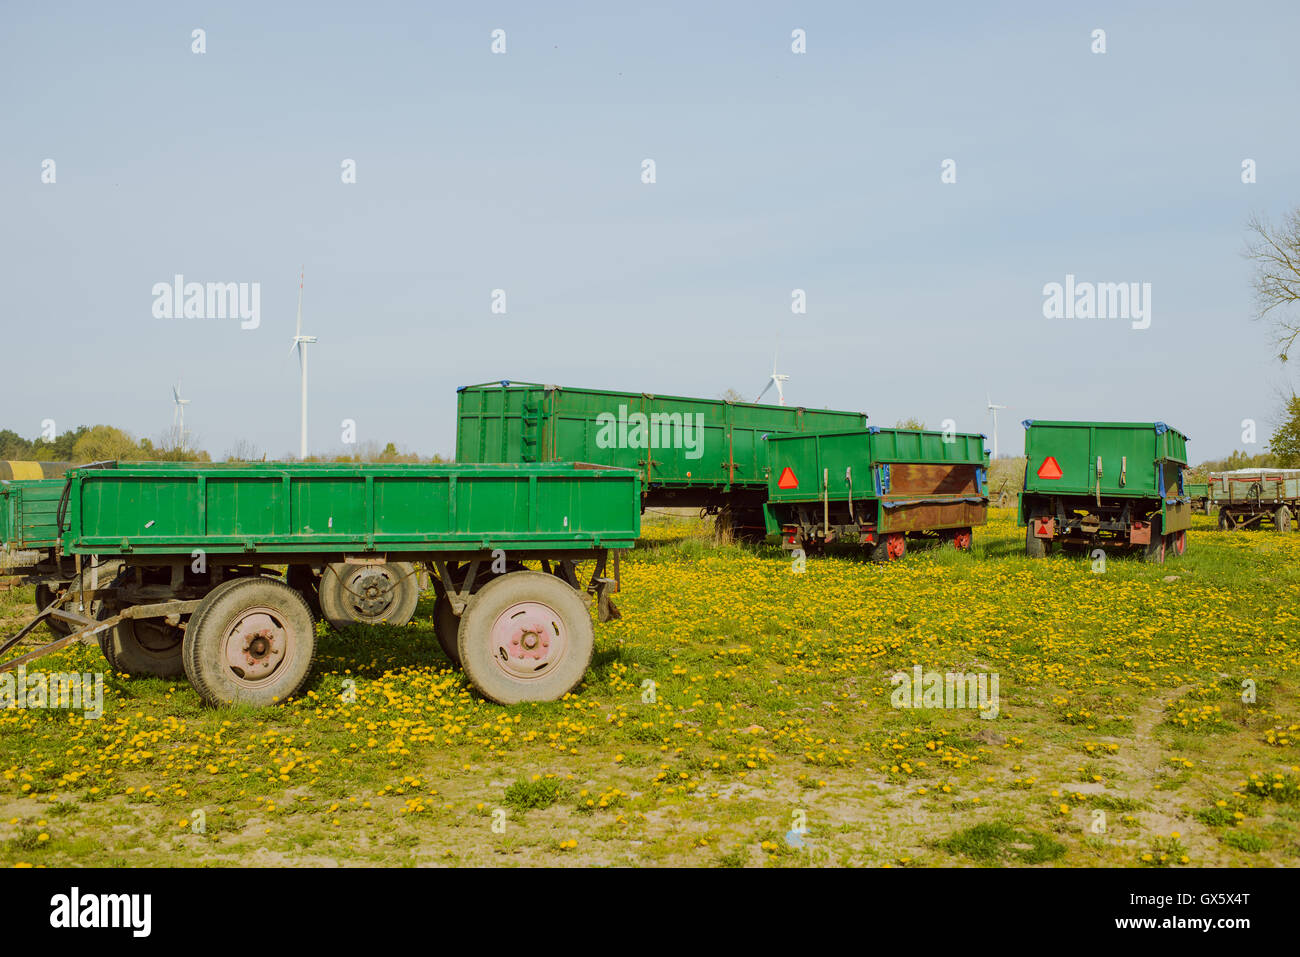 Green agricultural trailers on the farm in the morning. - Stock Image